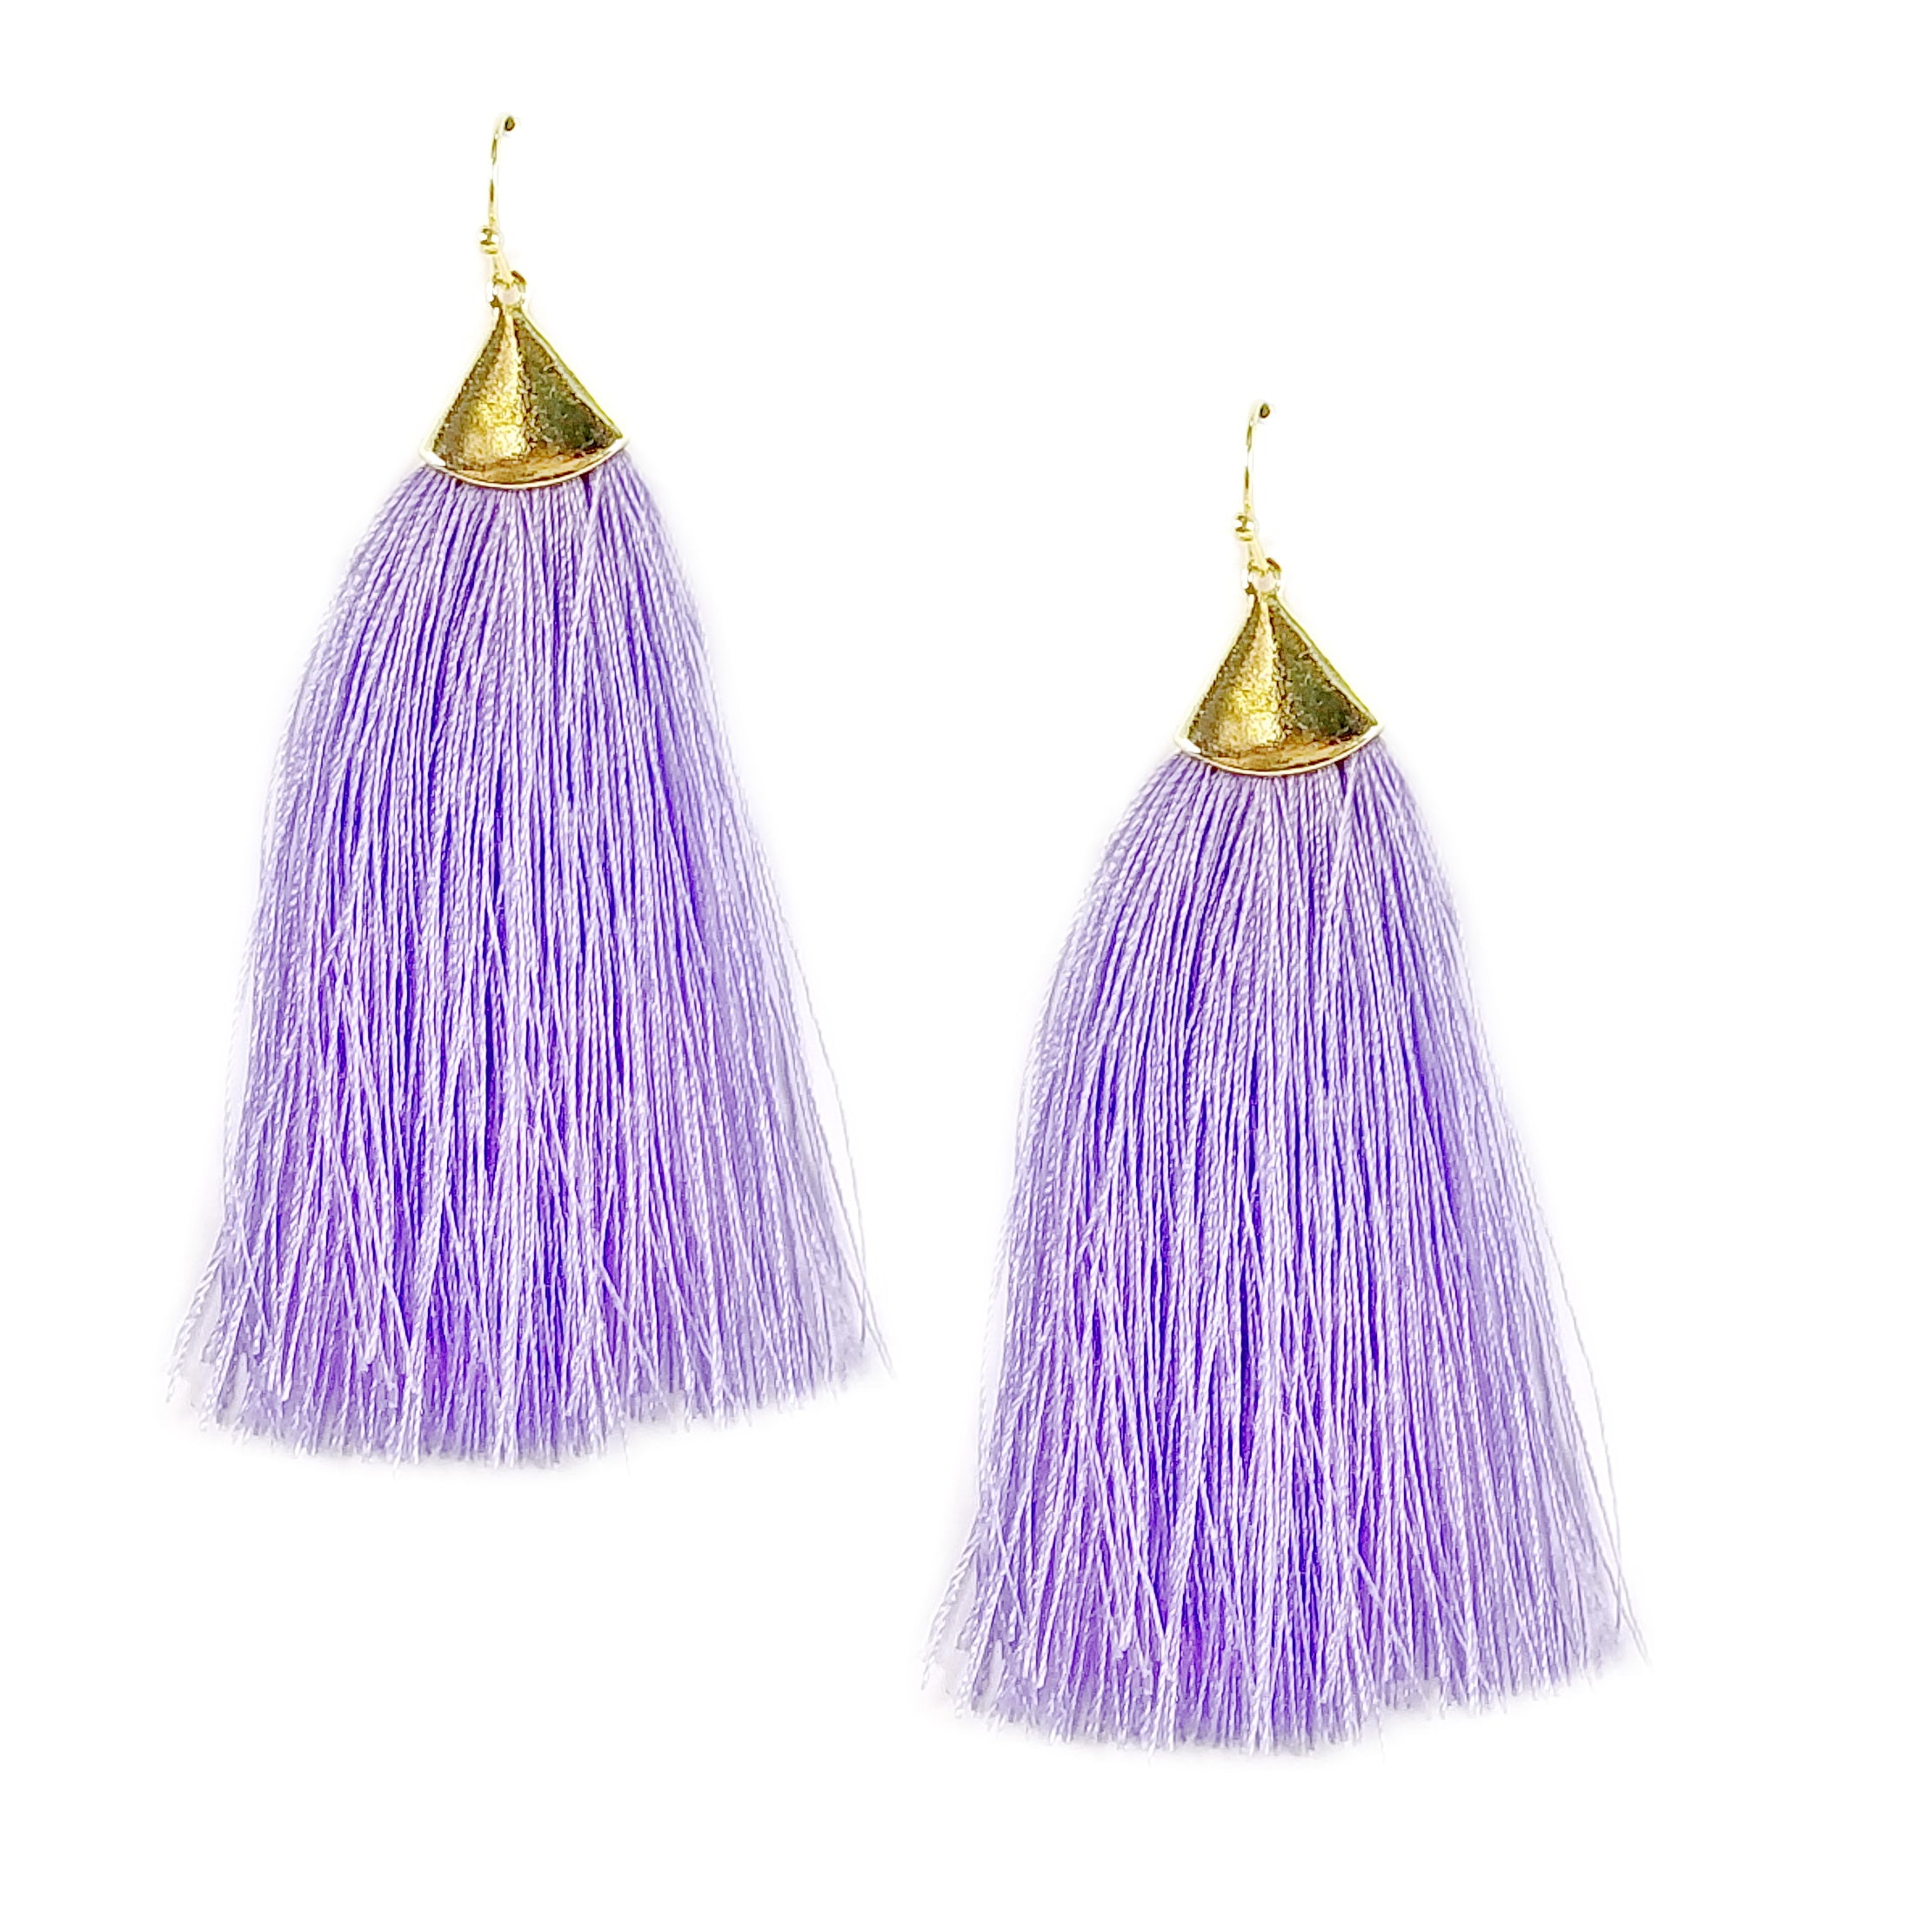 rachel arrivals harp earrings zoe new fringe shop